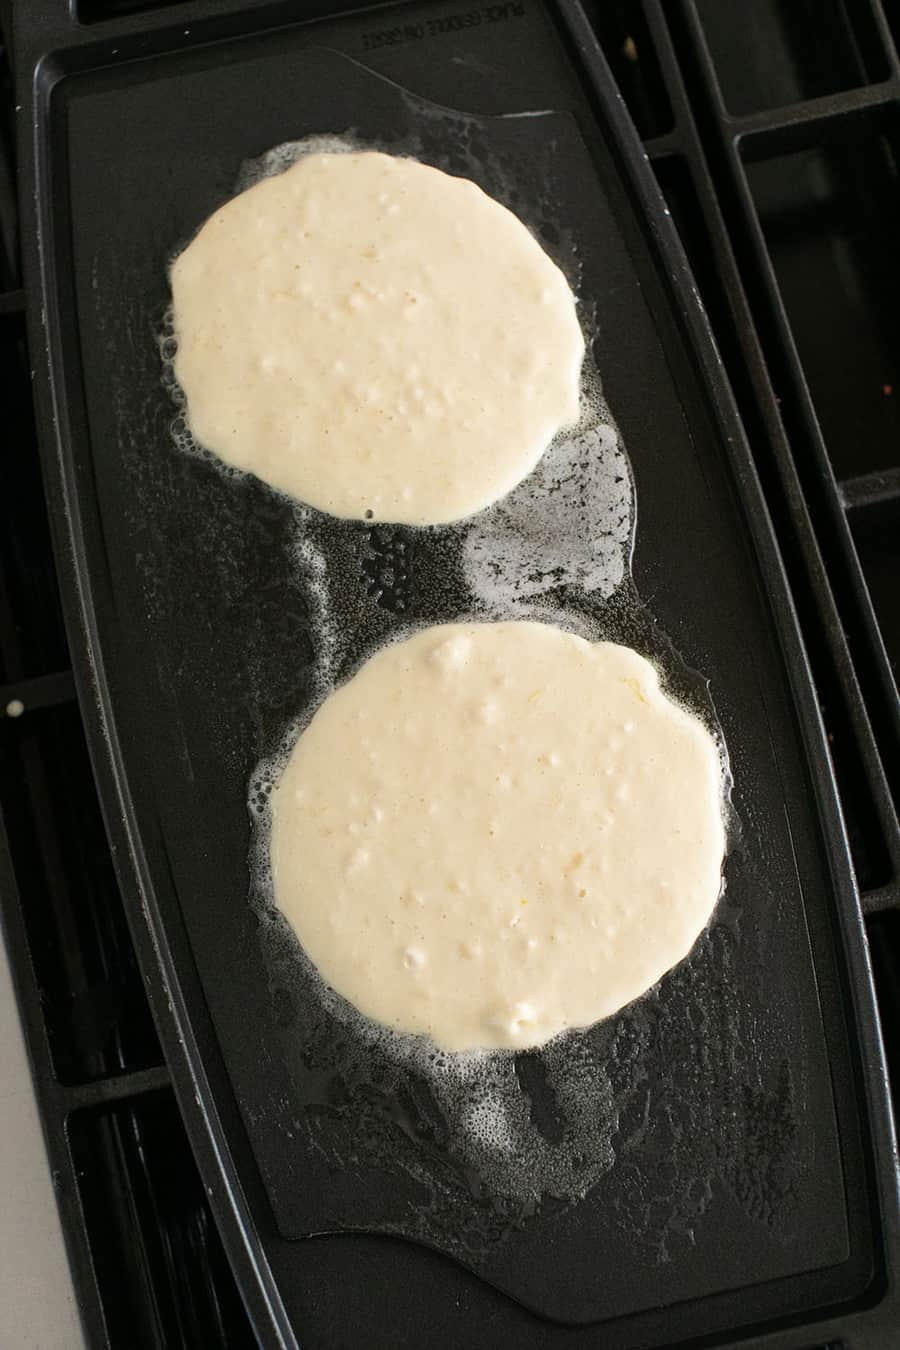 Two dollops of pancake batter on a hot griddle